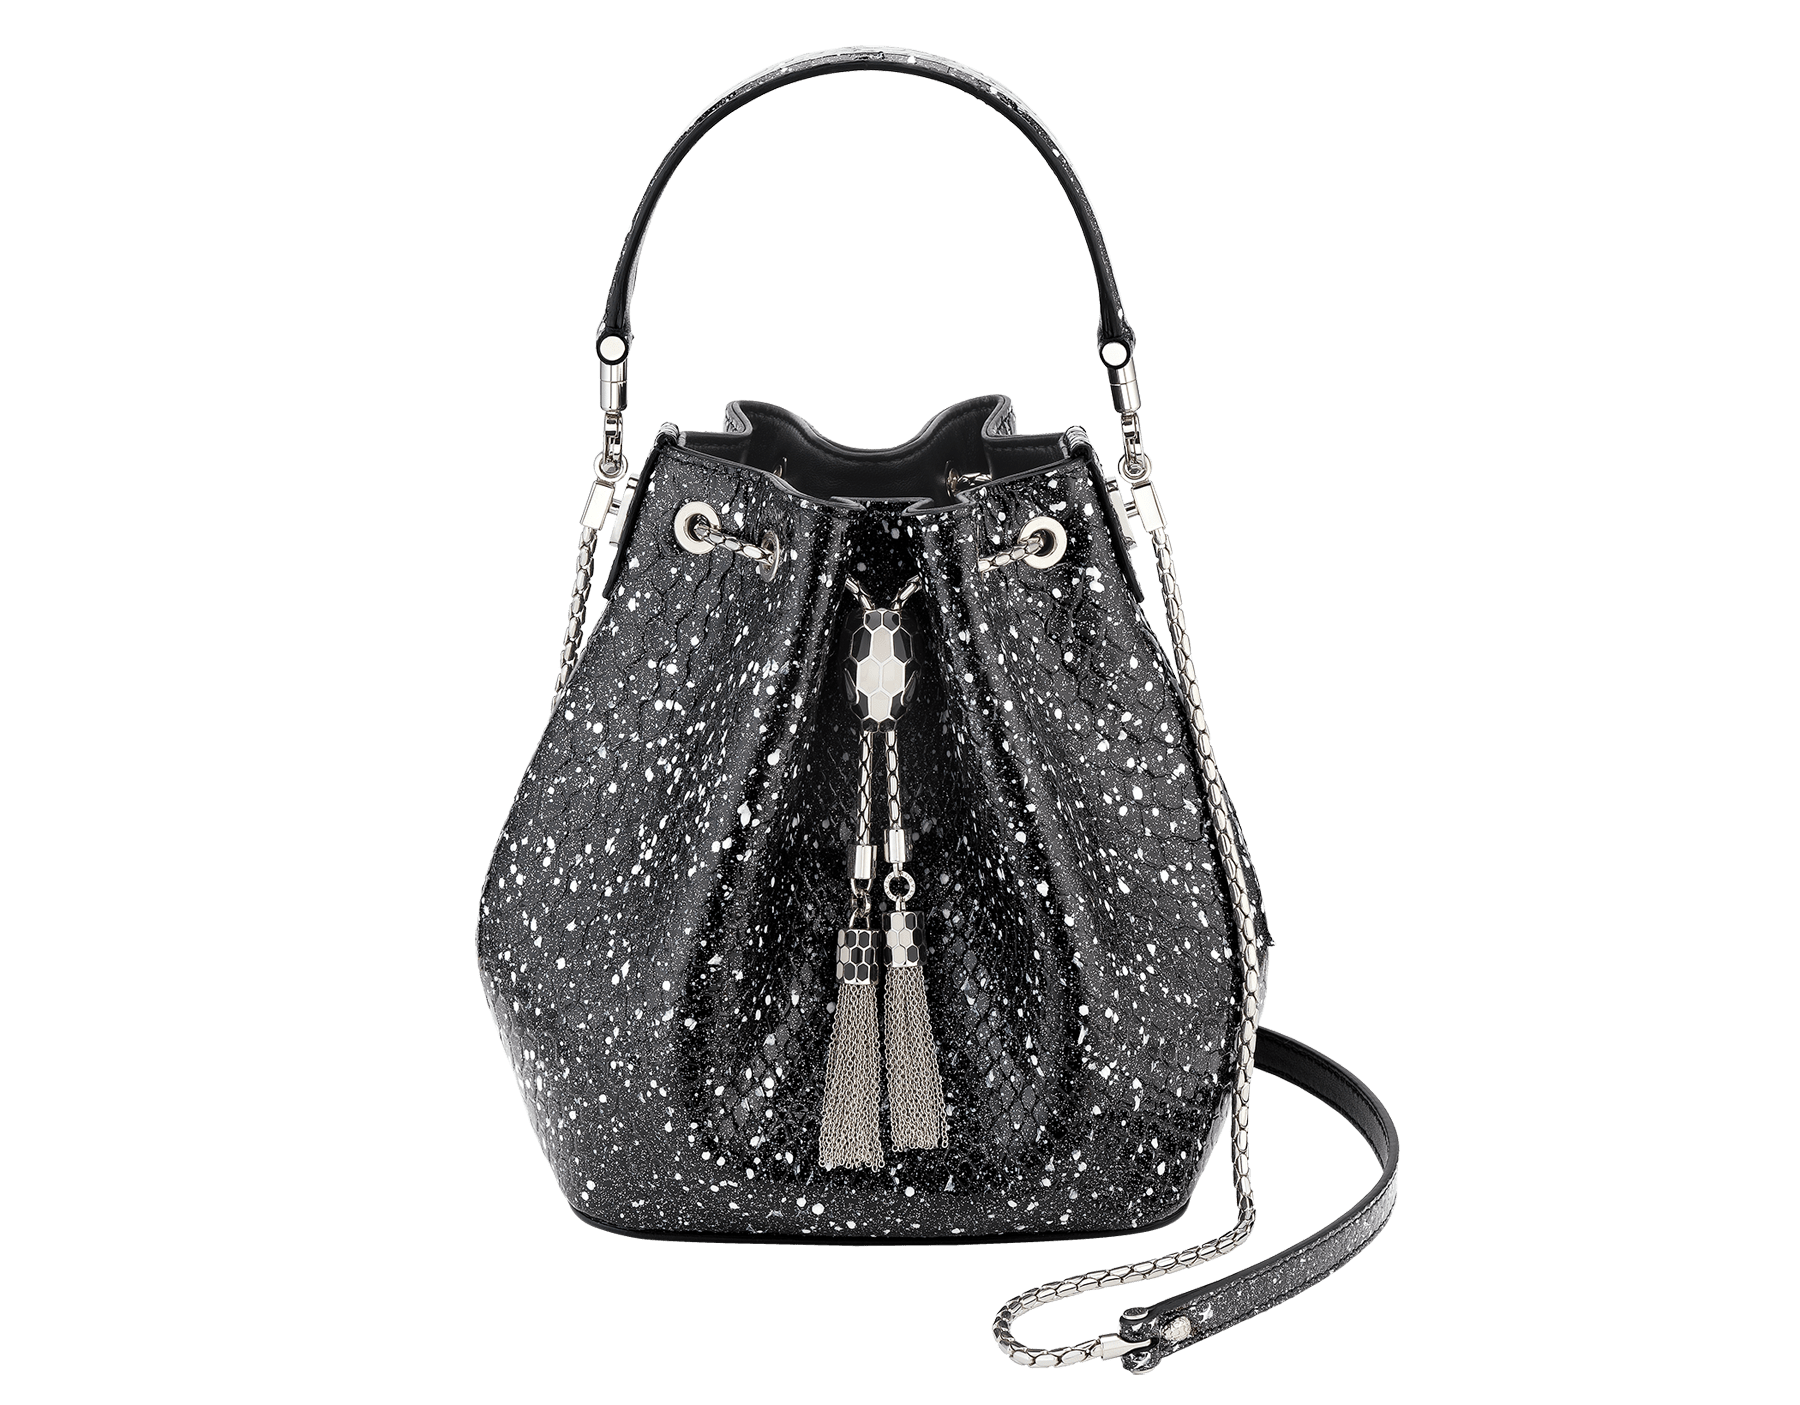 Serpenti Forever bucket bag in black and white Cosmic python skin and black nappa inner lining. Snakehead closure in palladium plated brass decorated with black and white enamel, and black onyx eyes. 288112 image 1